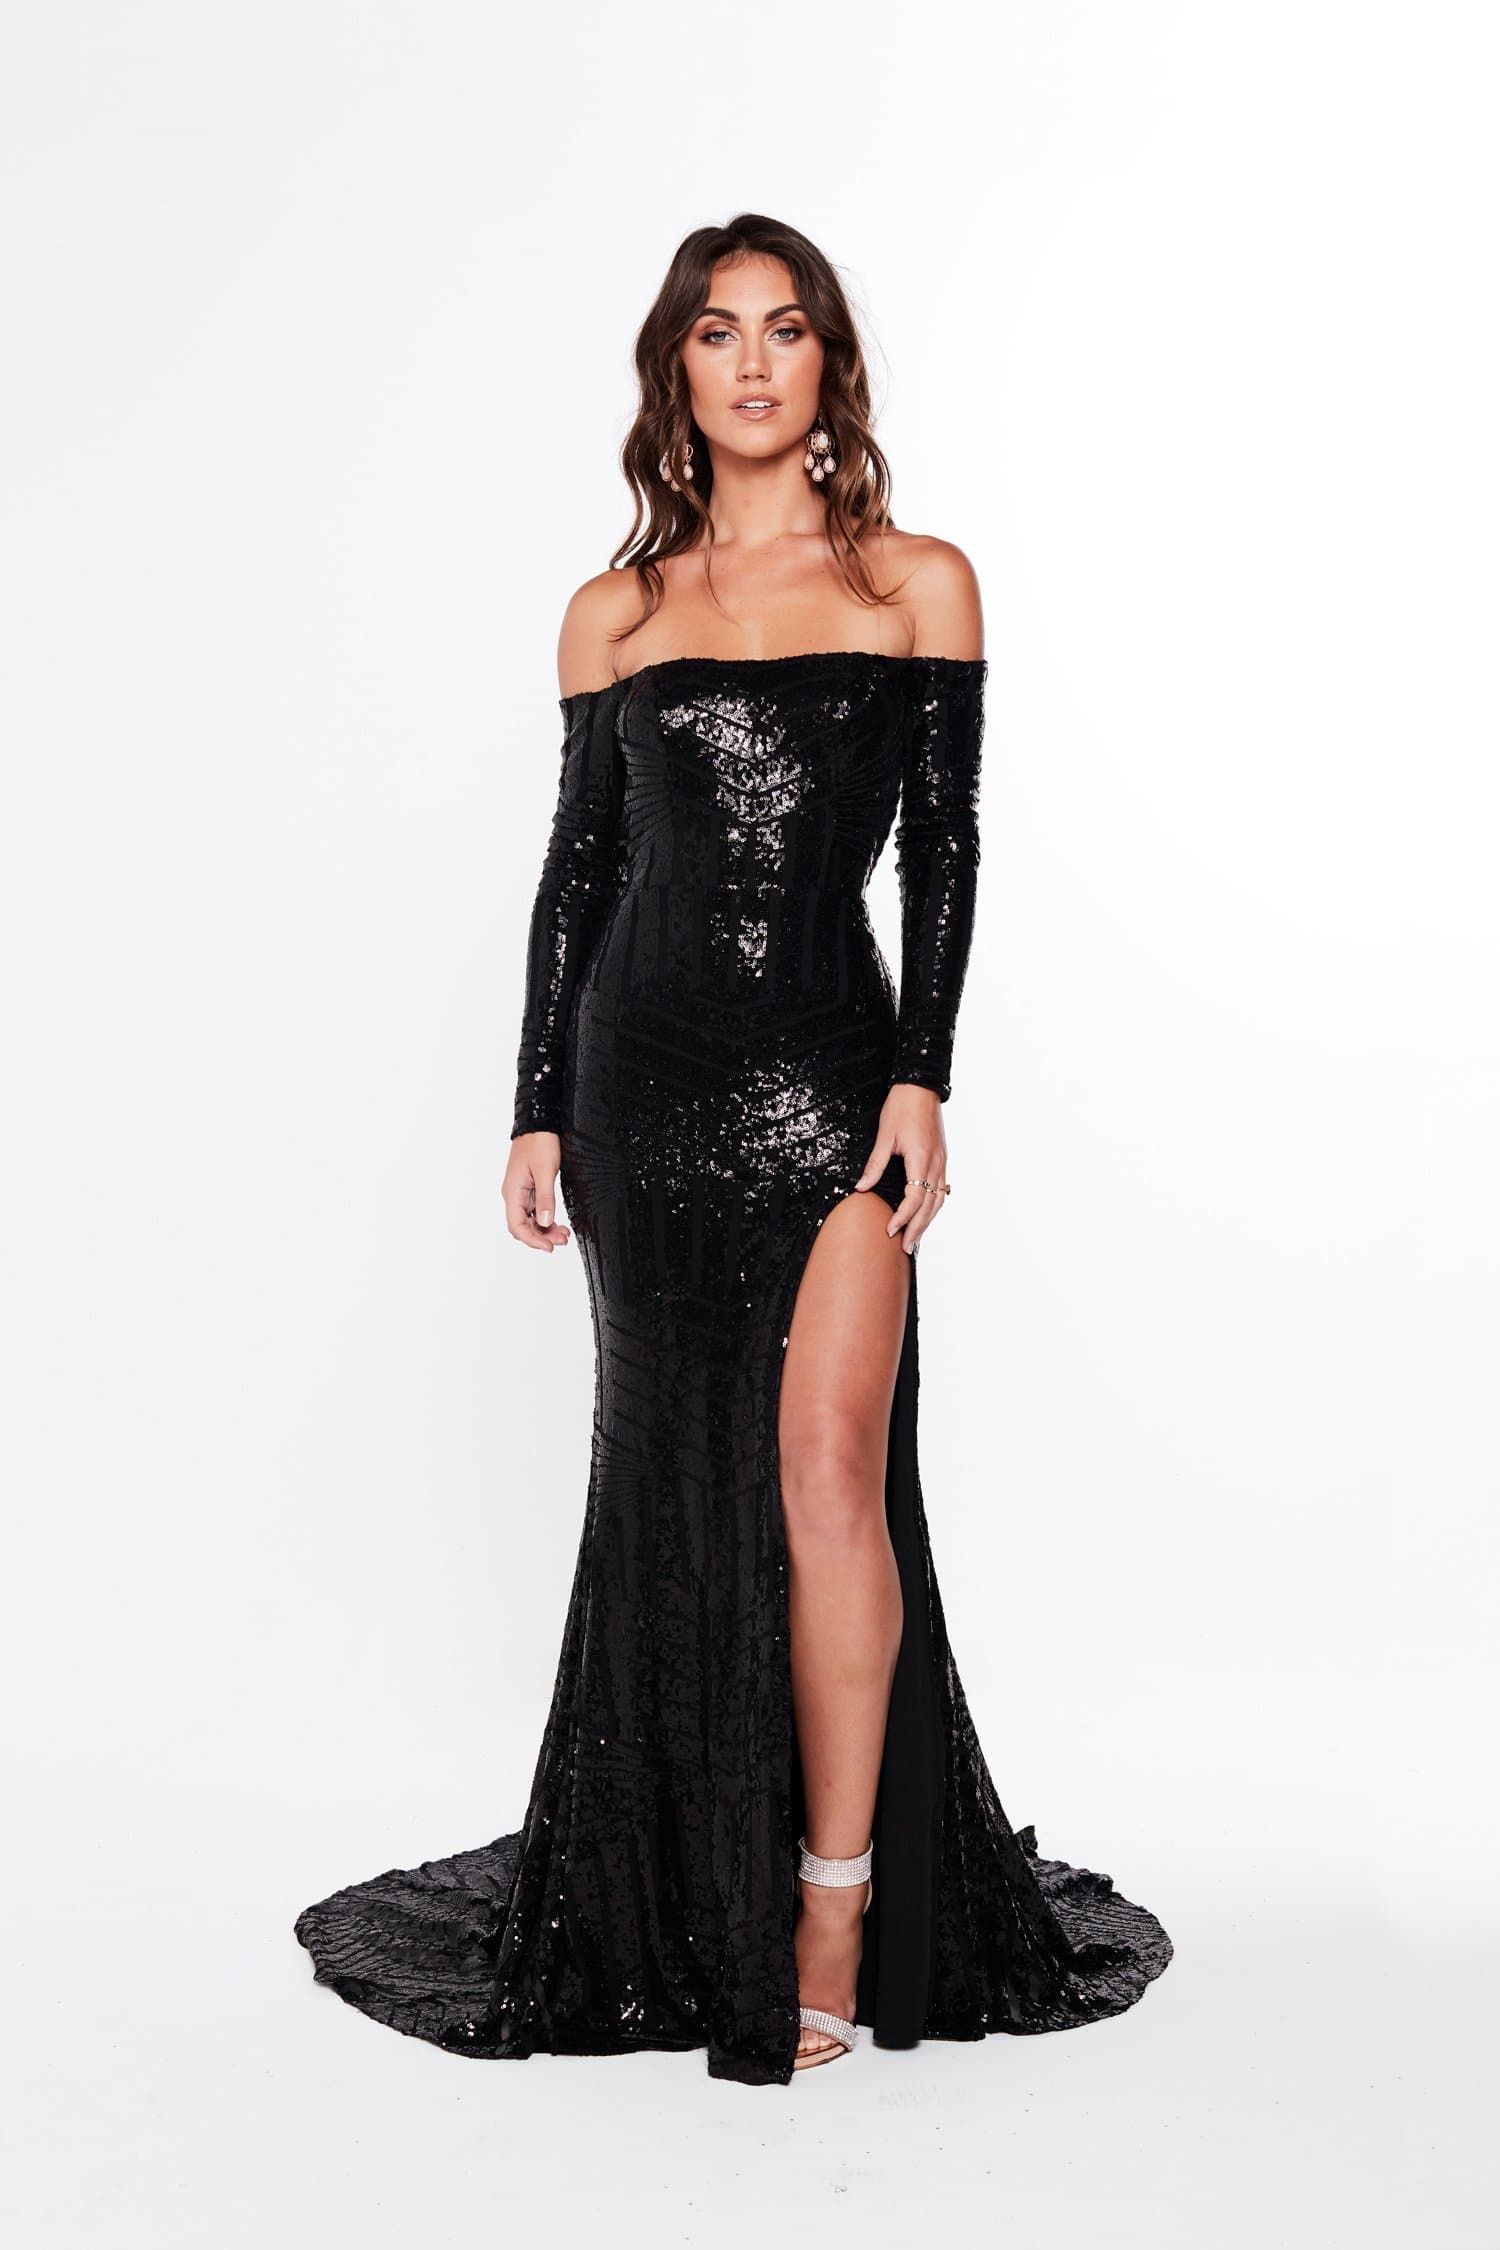 A&N Regina - Black Sequin Gown with Off-Shoulder Long Sleeves